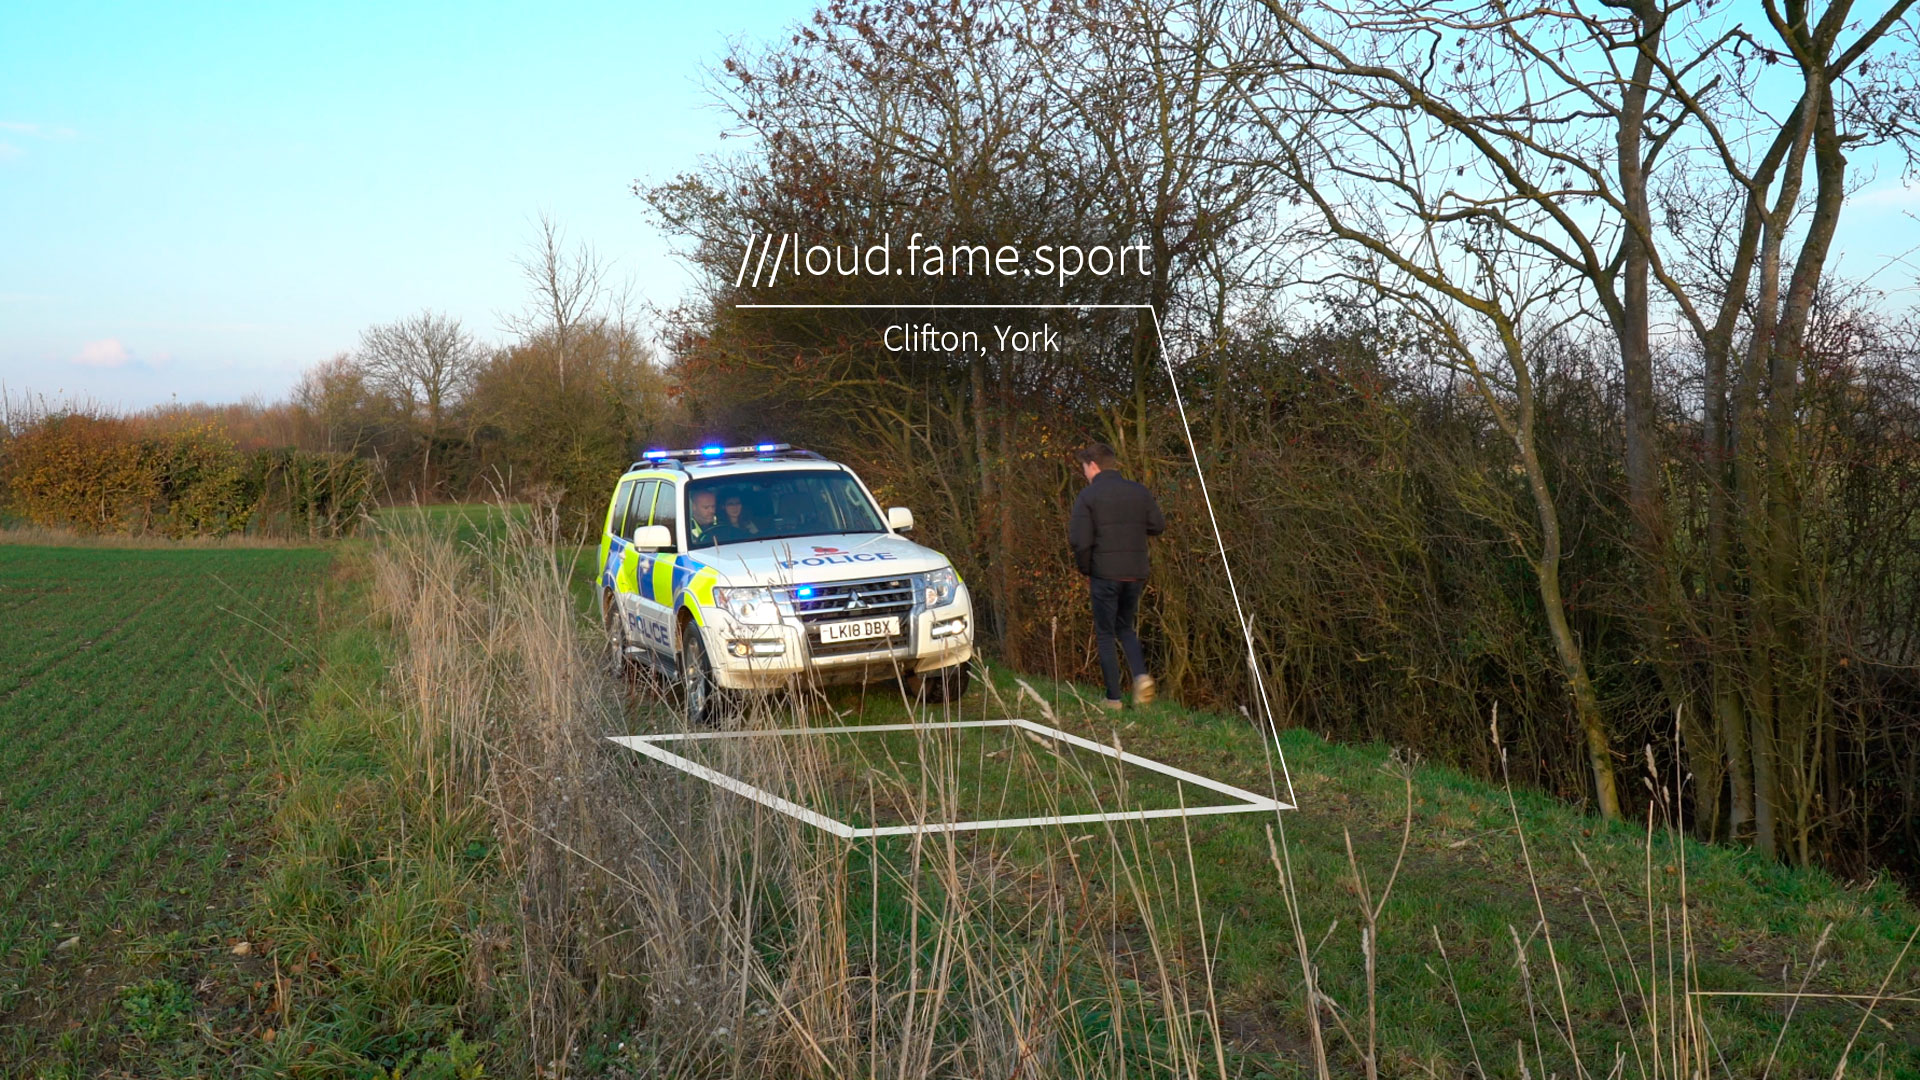 Police emergency response to field at 3 word location loud.fame.sport